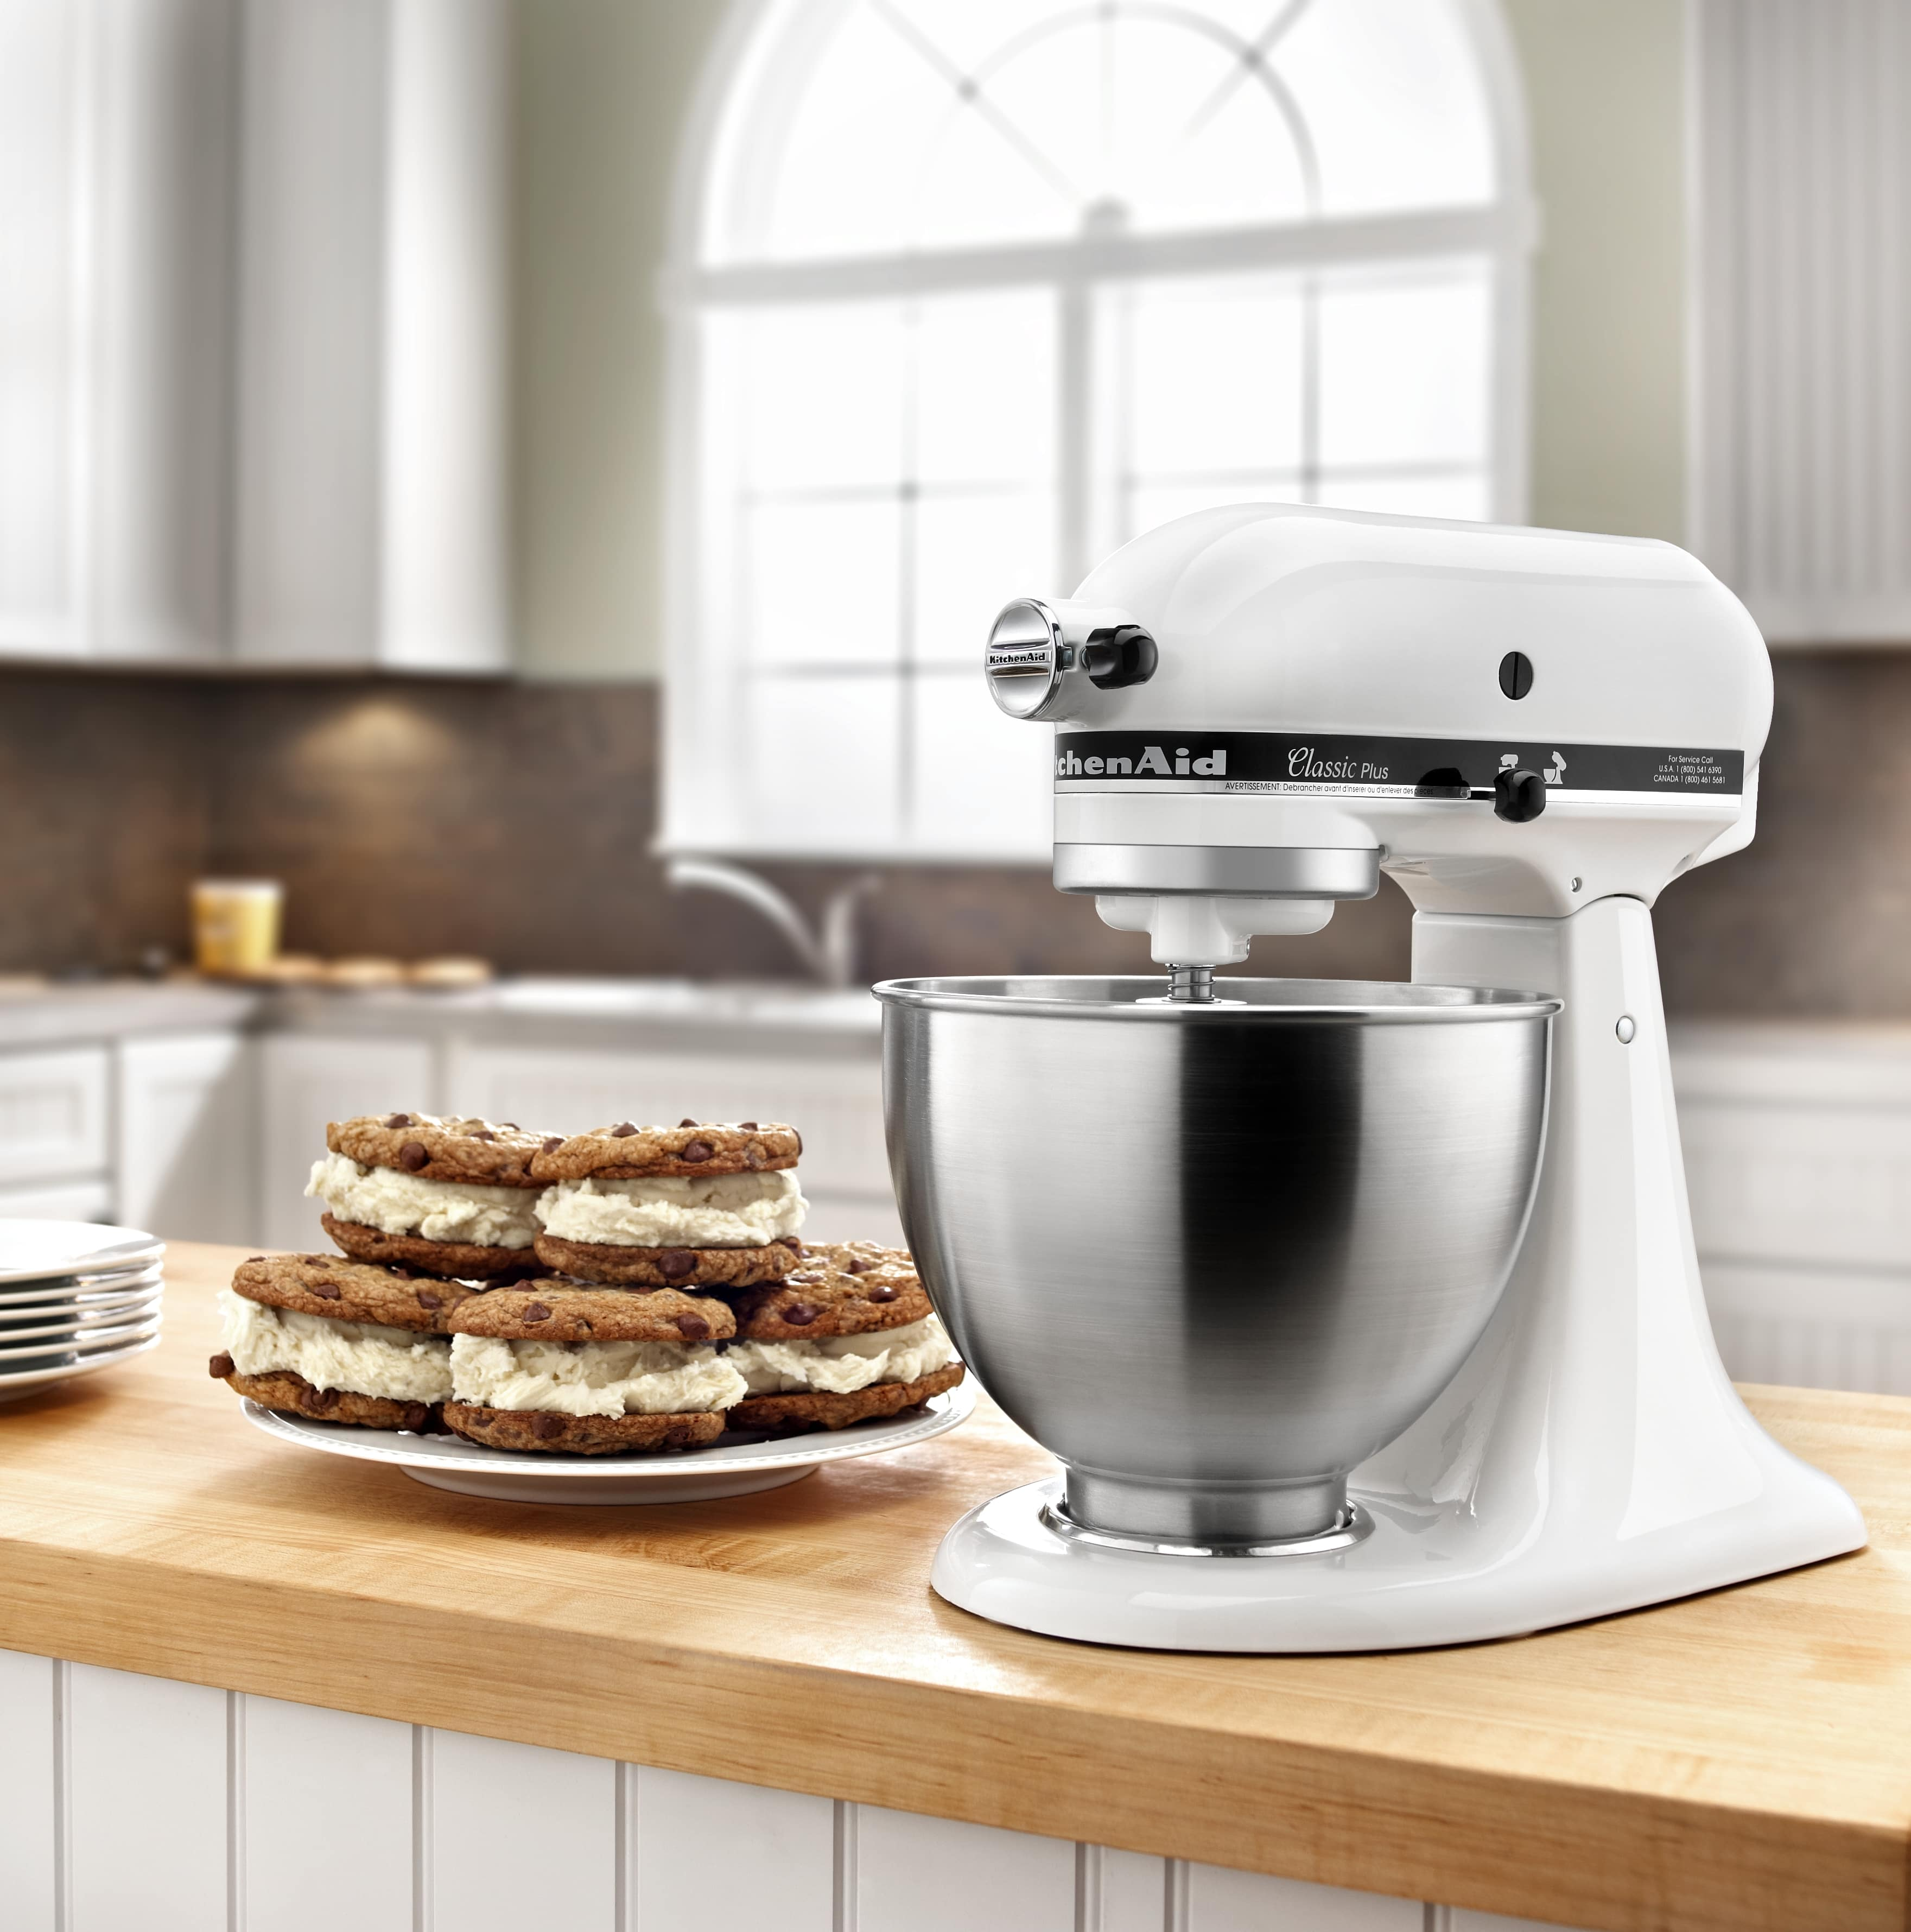 NEW-KitchenAid-Classic-Plus-Series-4-5-Quart-Tilt-Head-Stand-Mixer-KSM75 thumbnail 14